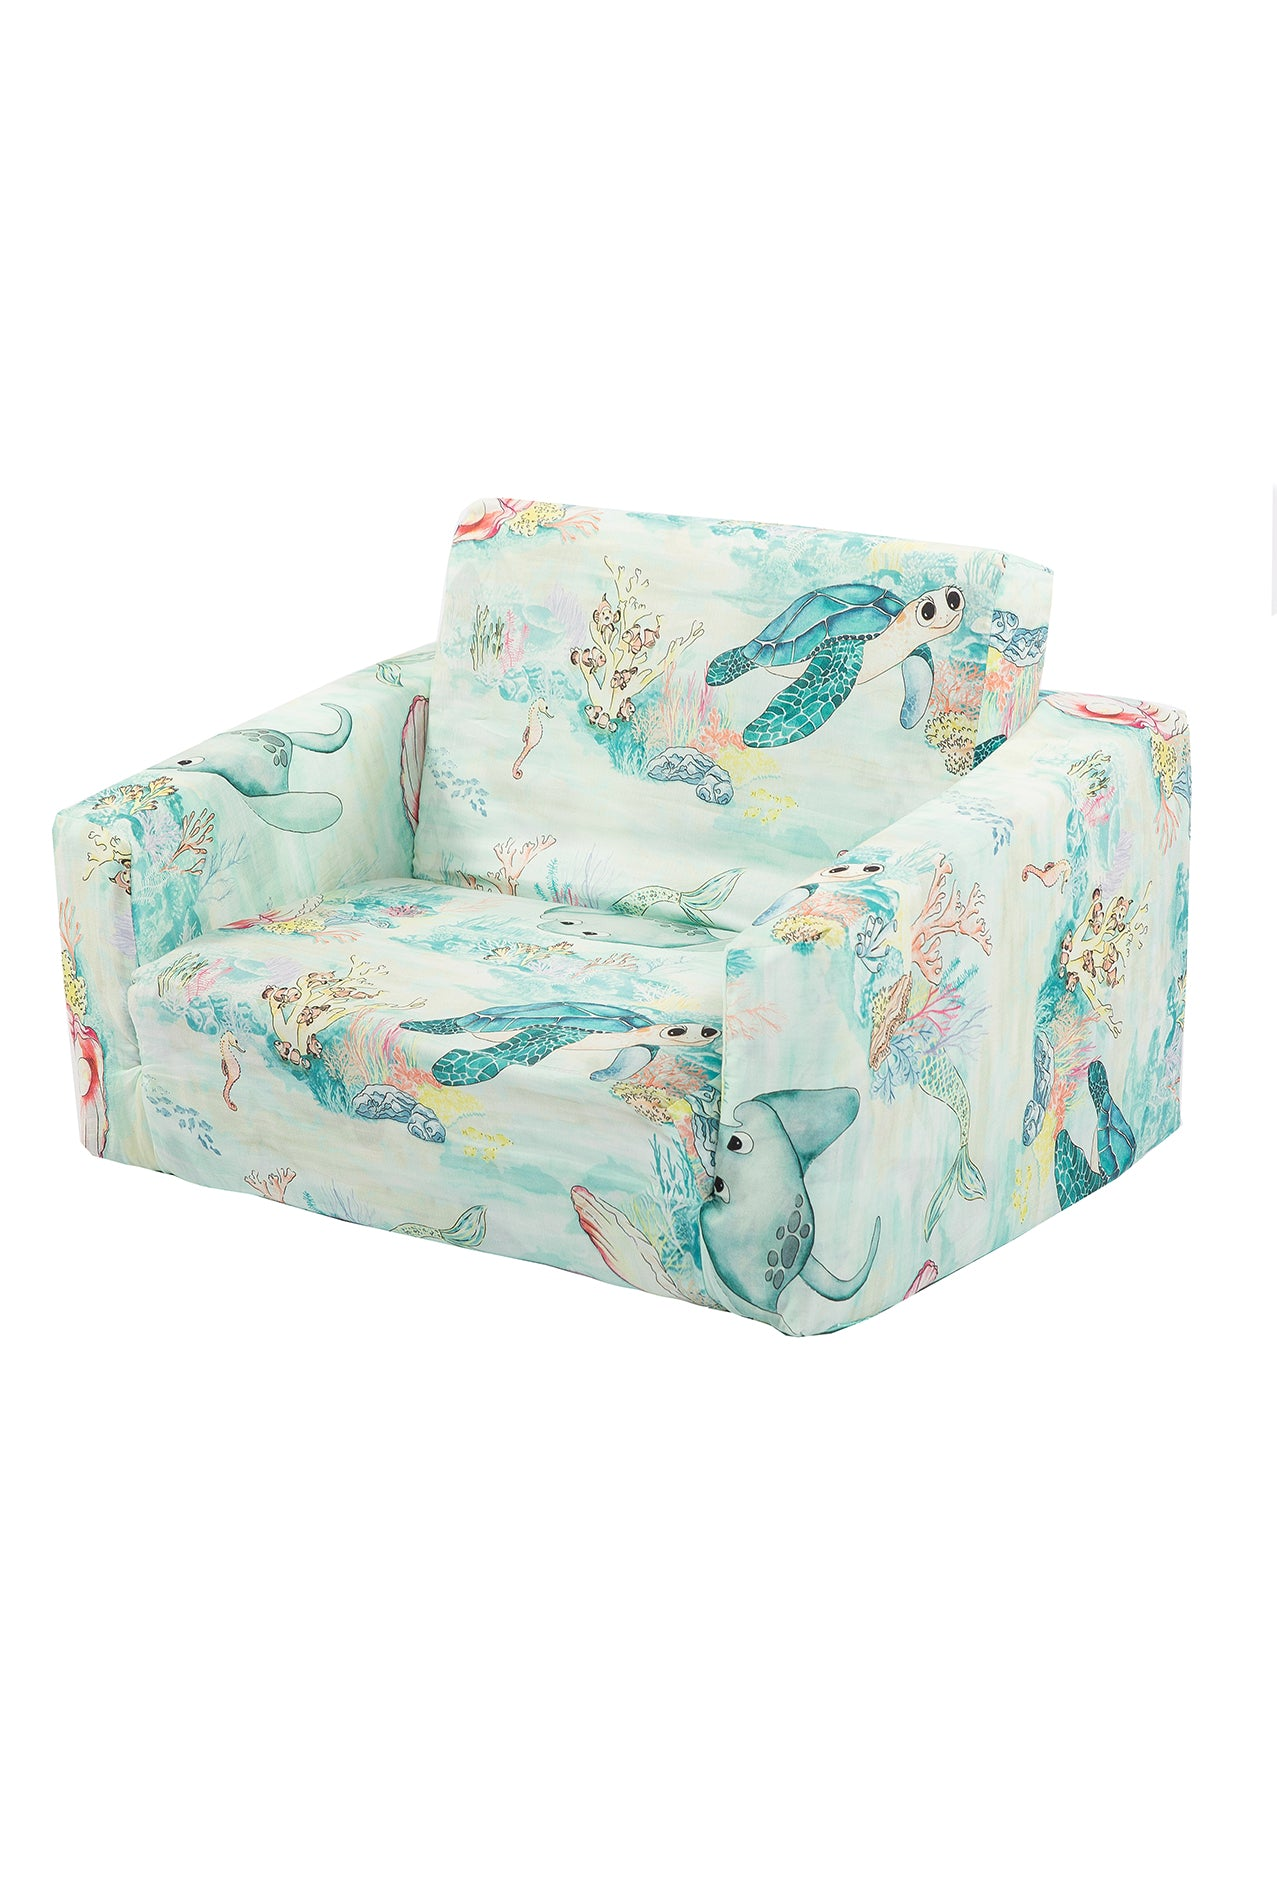 Pleasant Lady Elliot Island Toddler Couch Cover Pre Order Only Evergreenethics Interior Chair Design Evergreenethicsorg